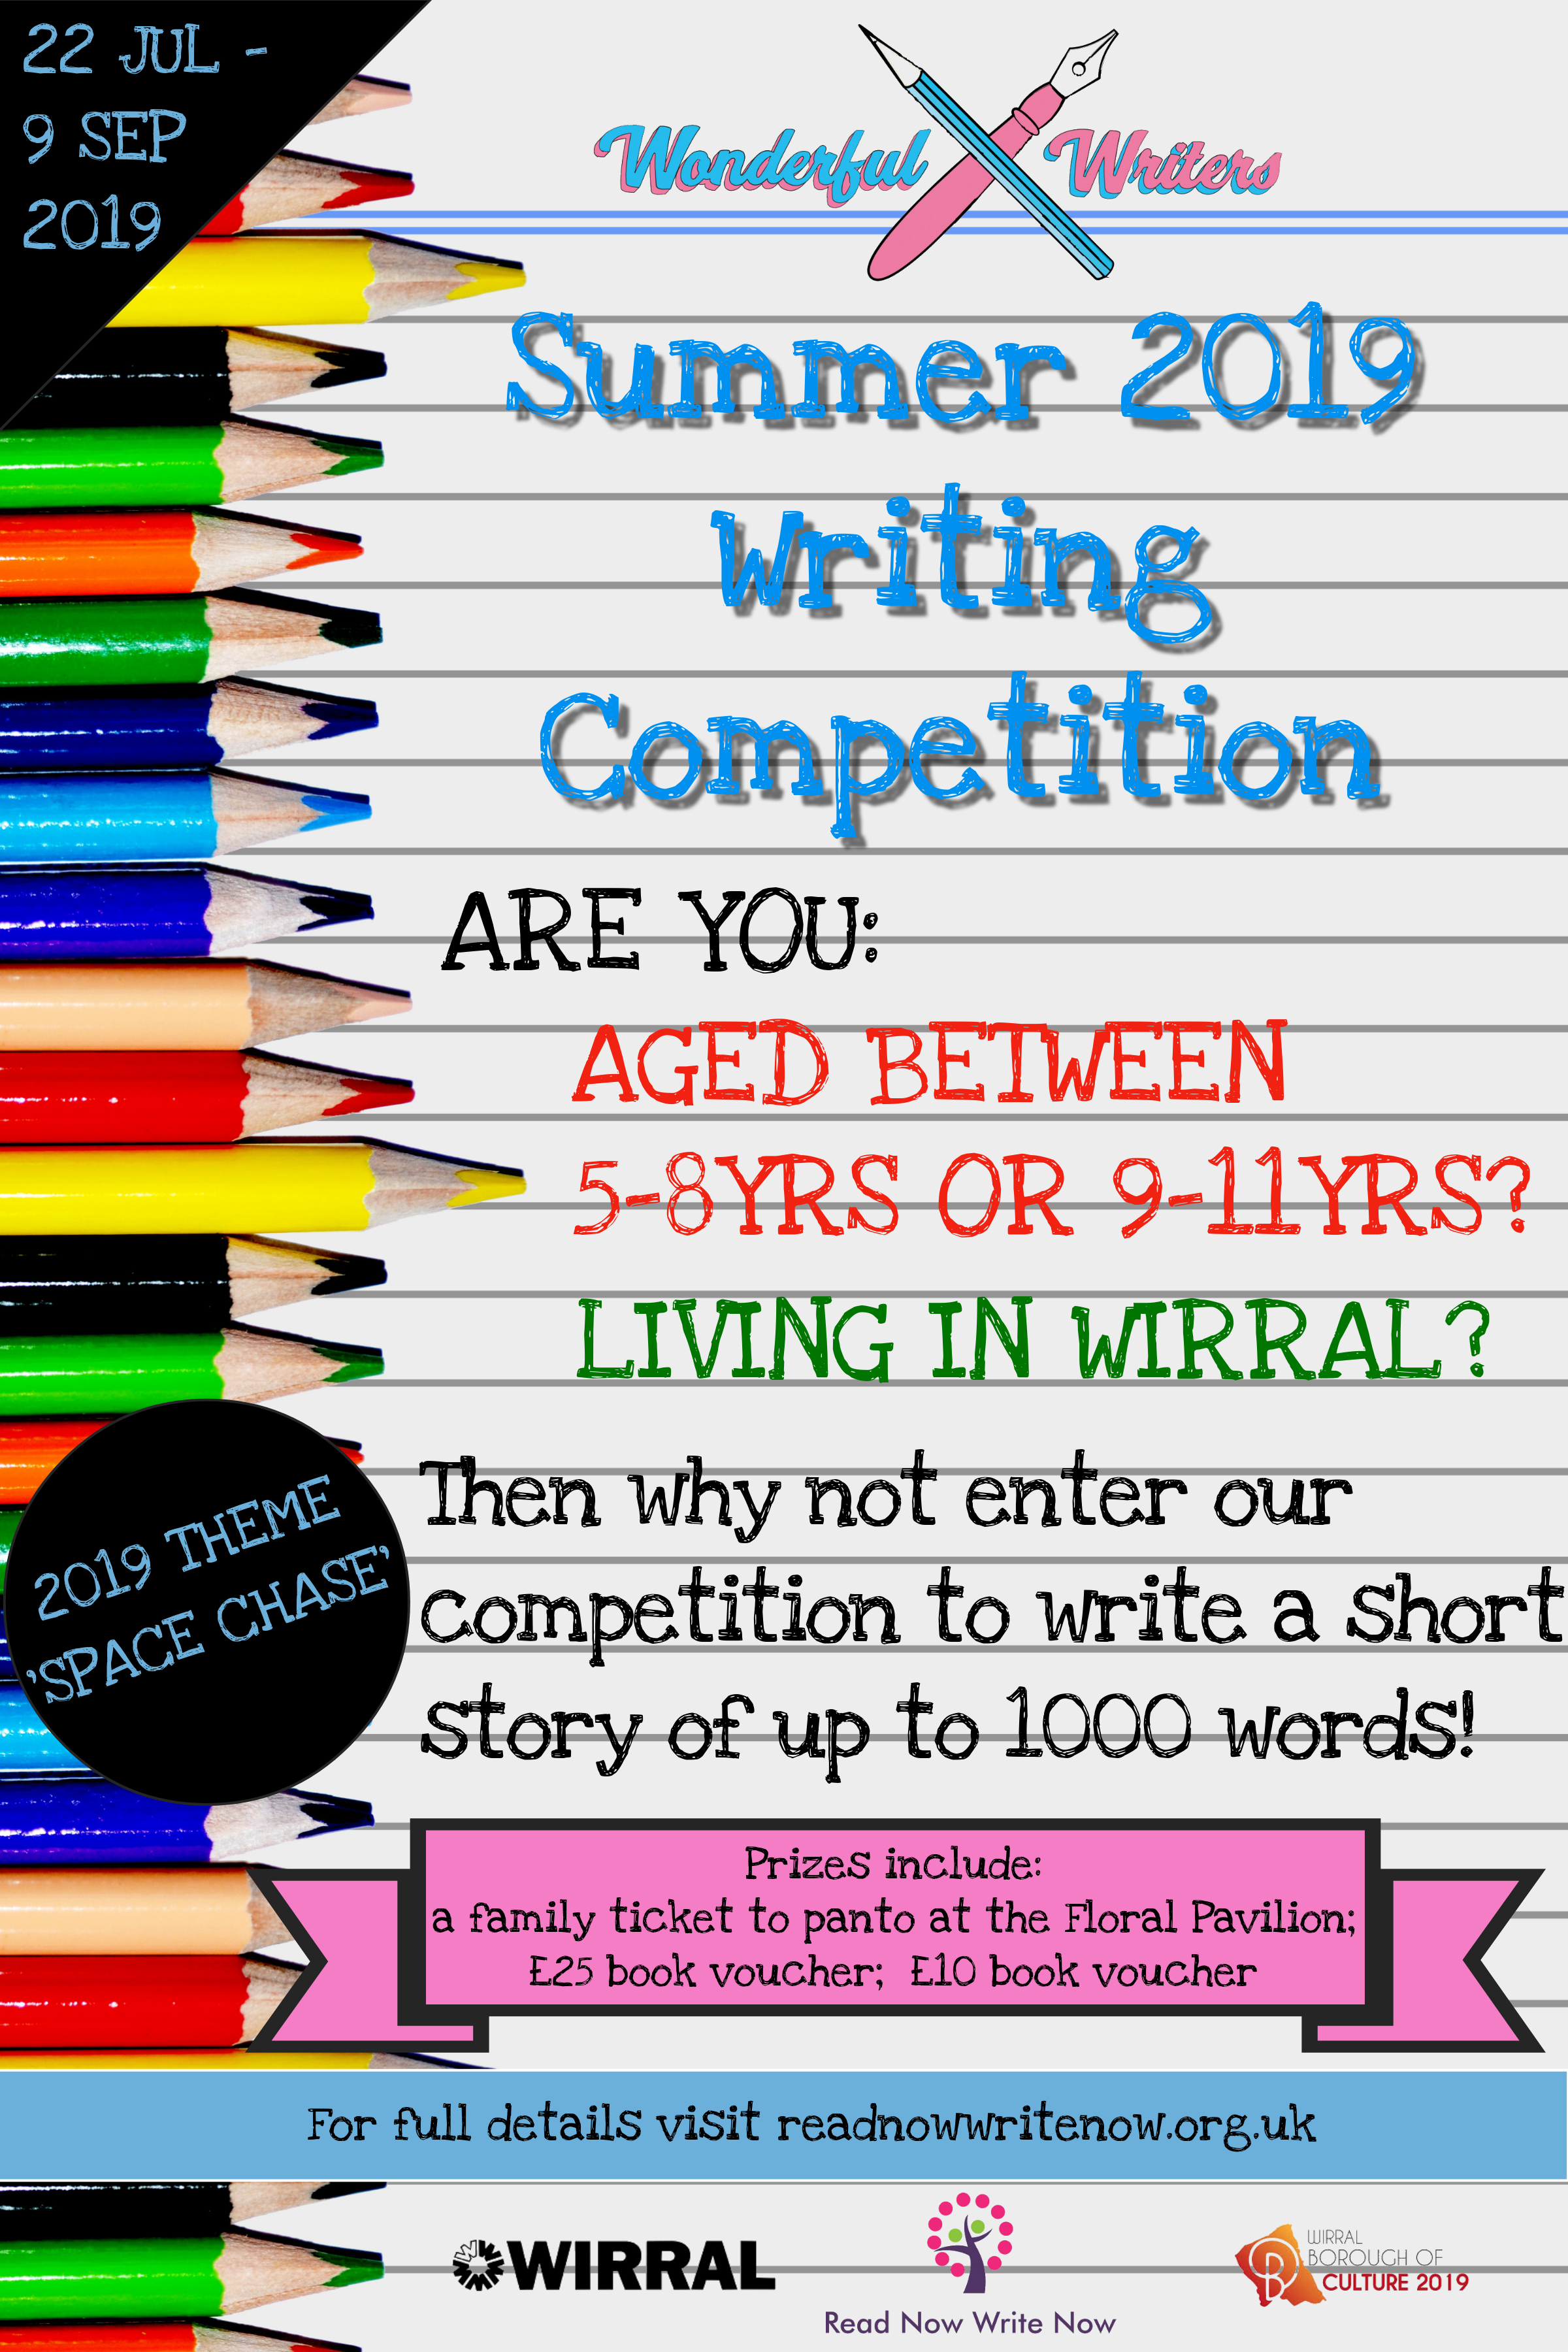 Wonderful Writers Competition